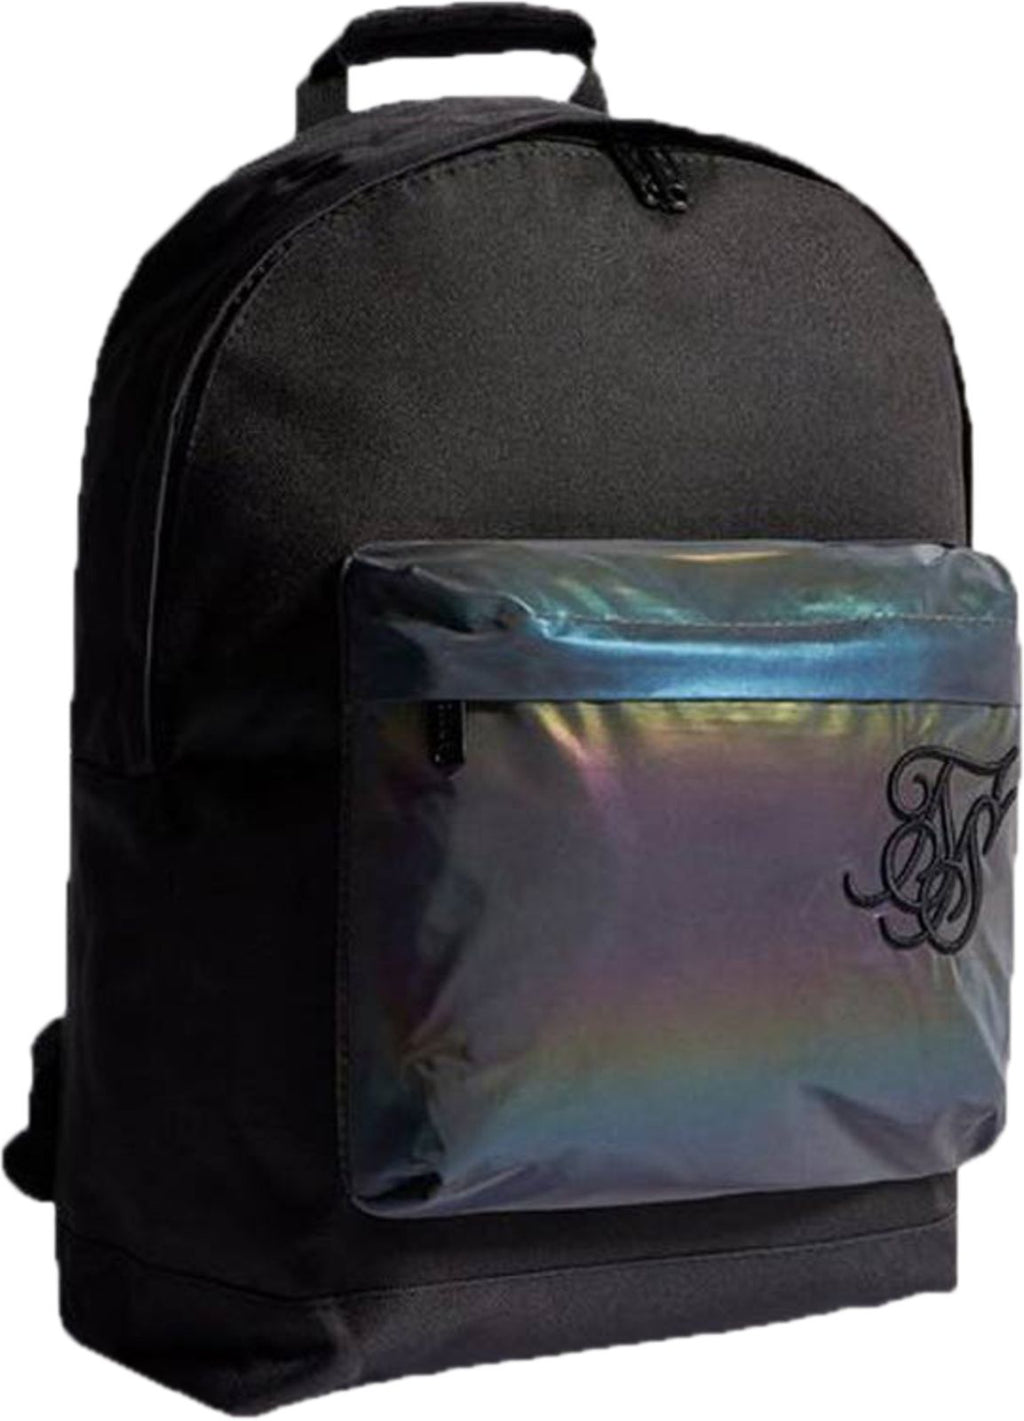 Sik Silk Iridescent Pouch Backpack Bag